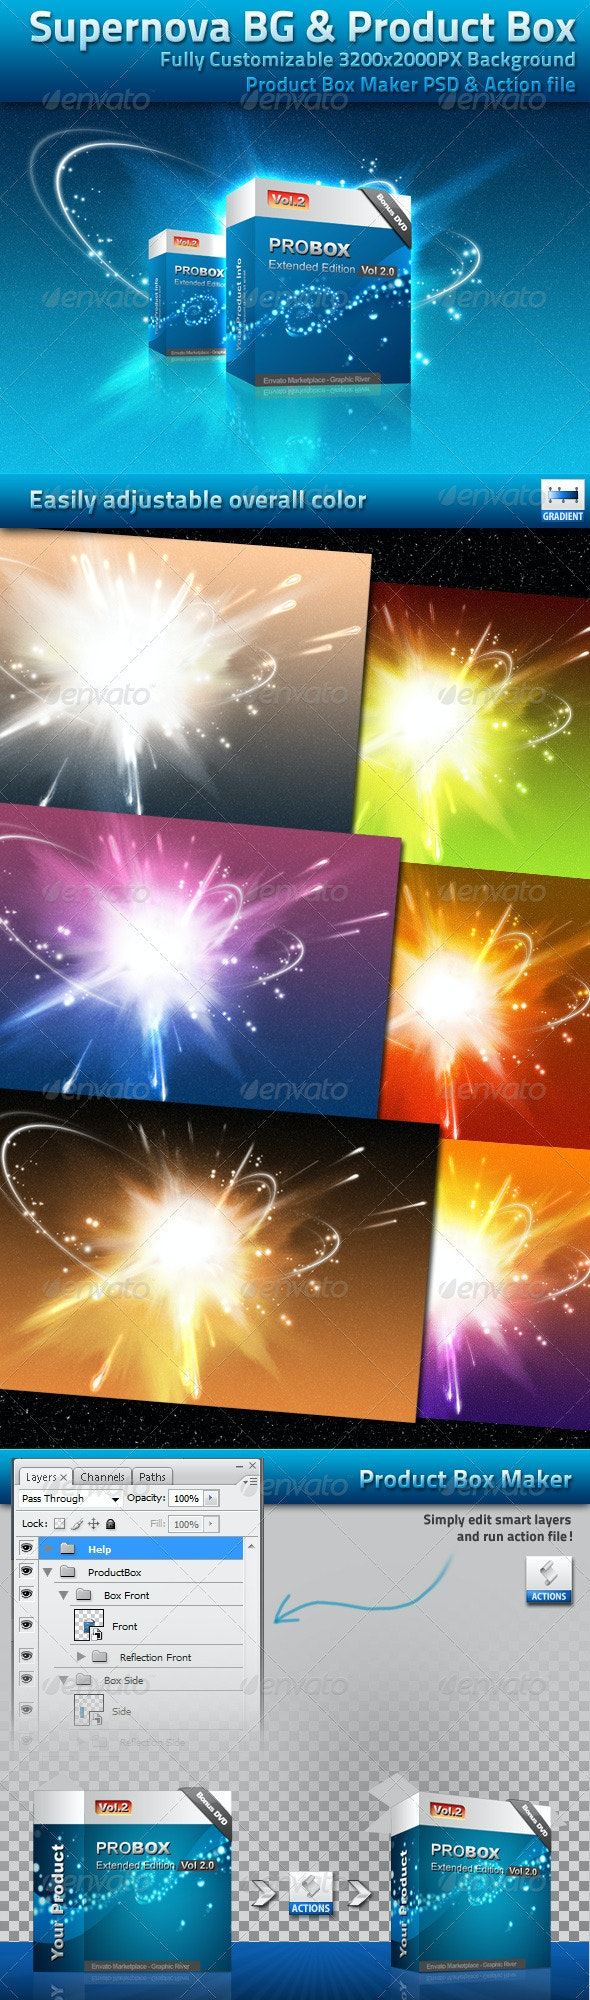 Supernova Background With Product Box - Abstract Backgrounds